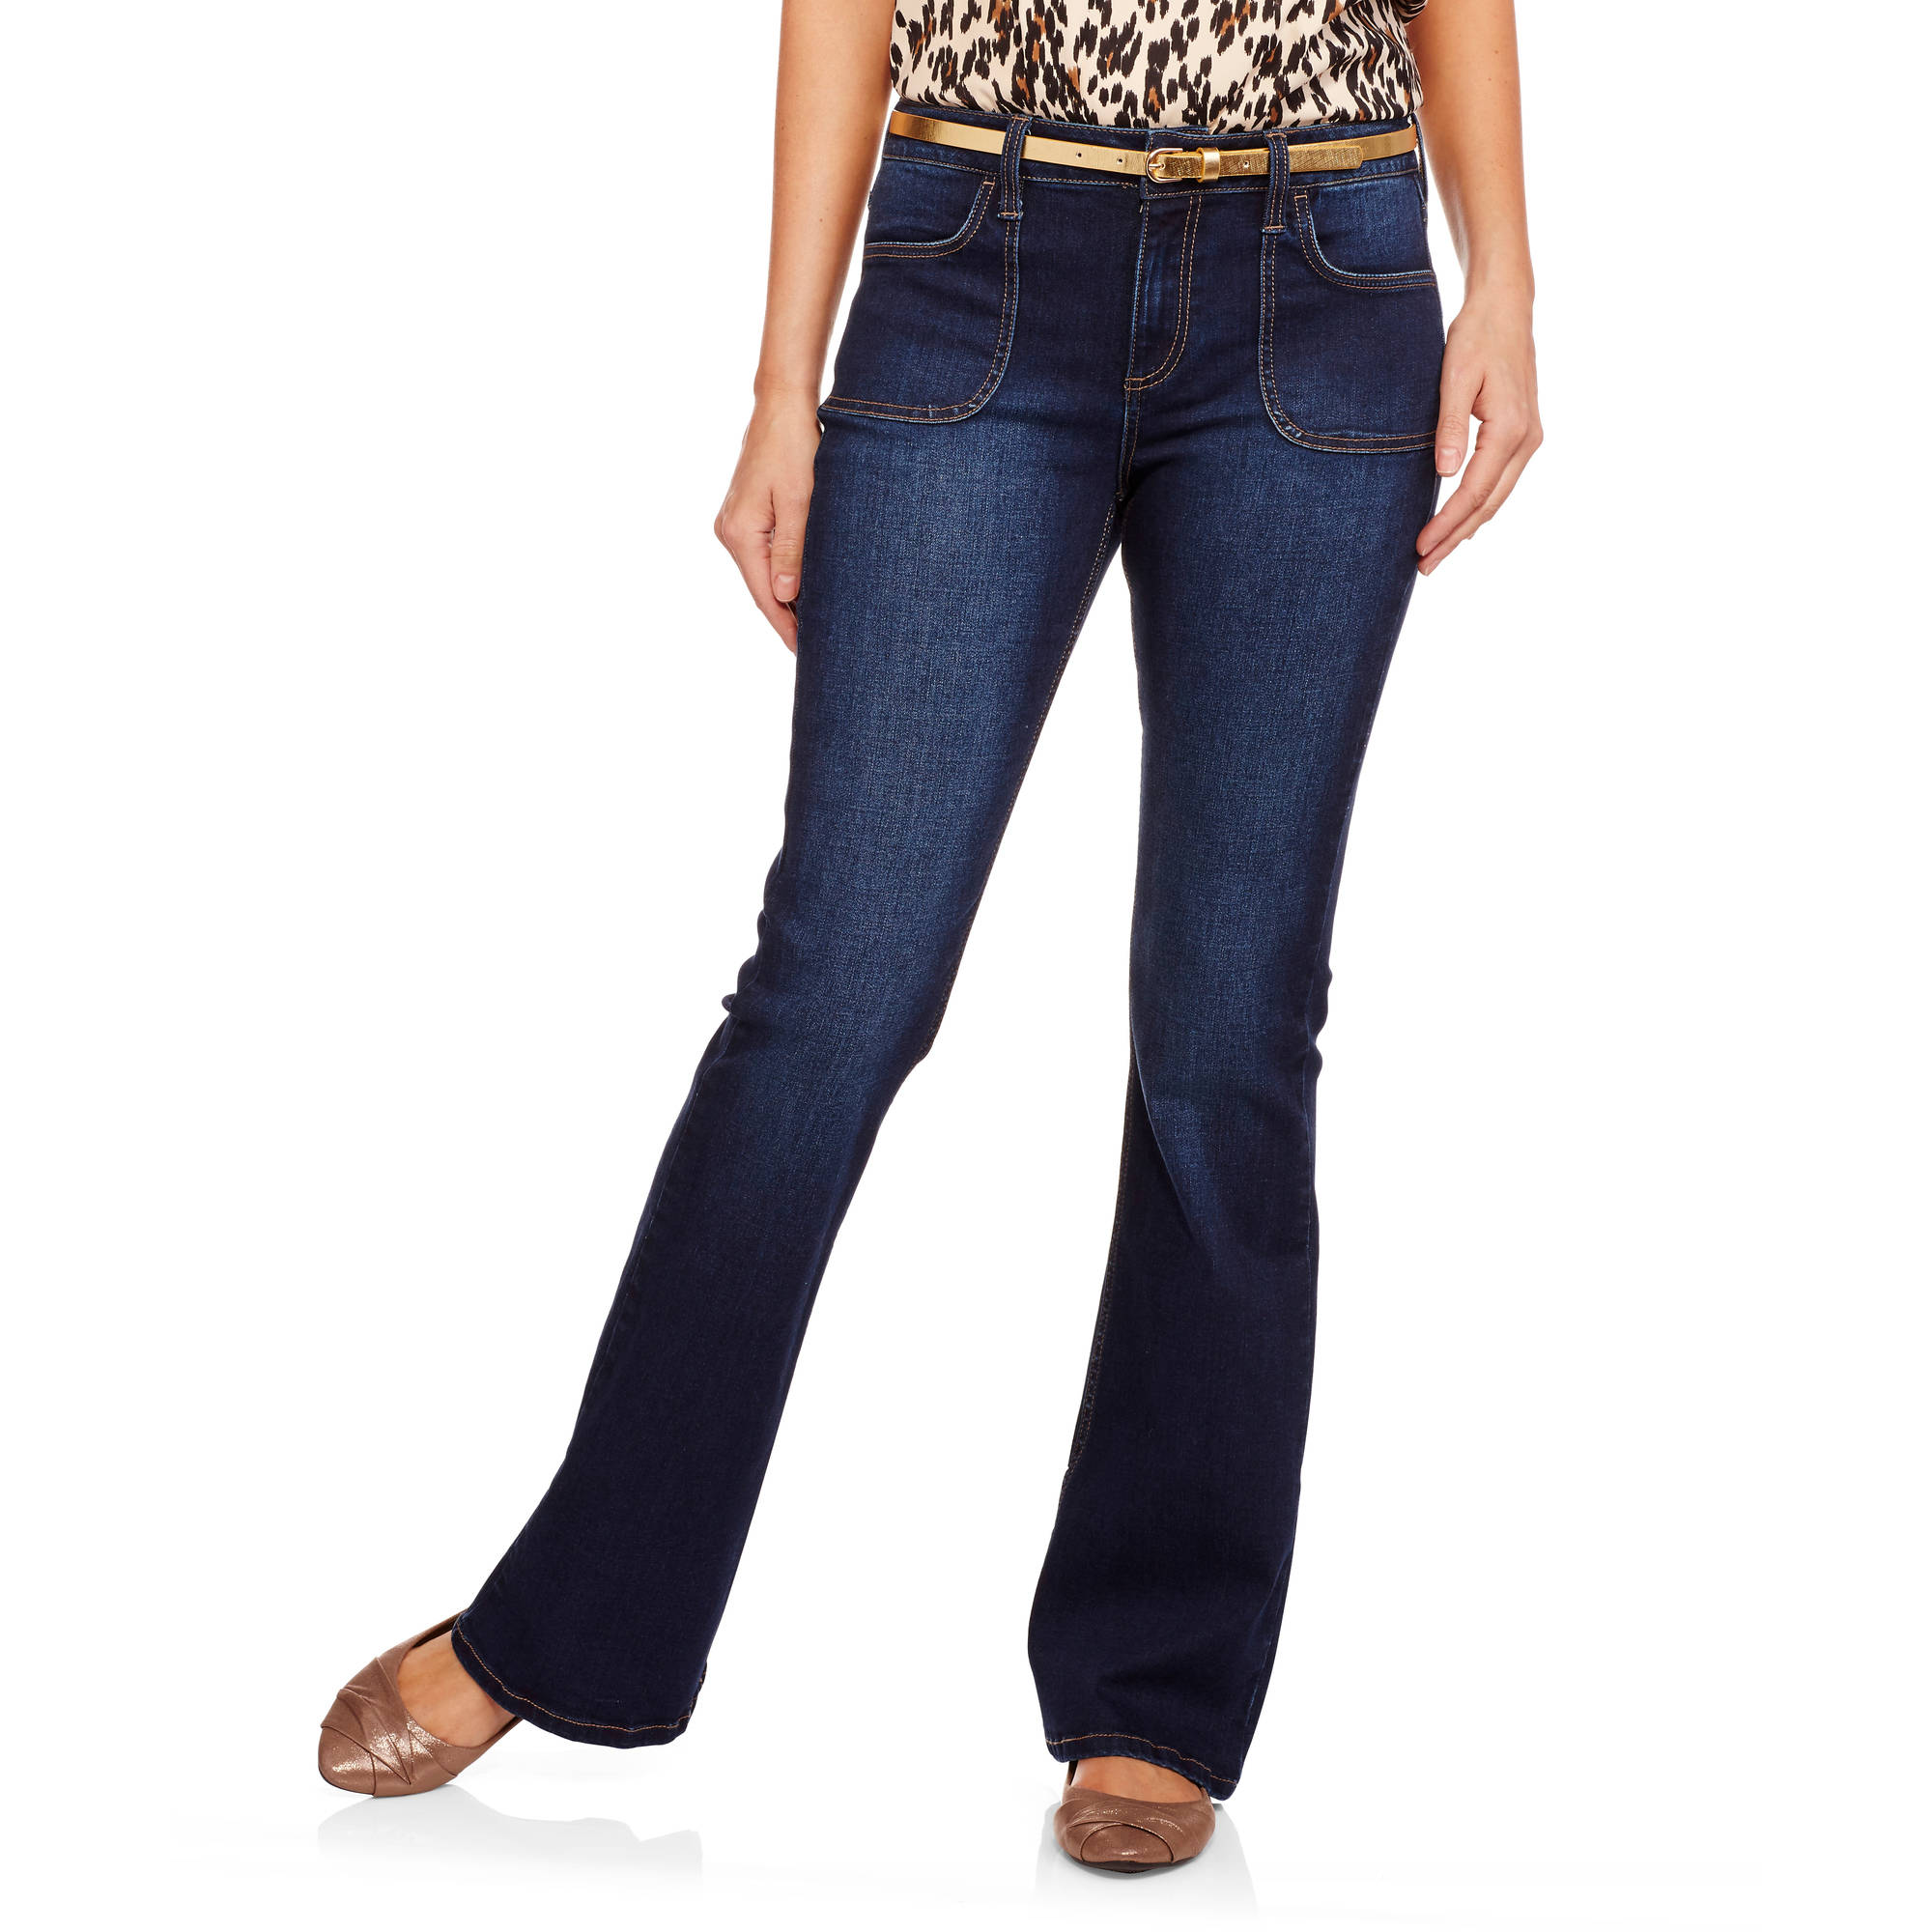 Women's Beatnik Porkchop Pocket Flare Jean featuring Premium Stretch